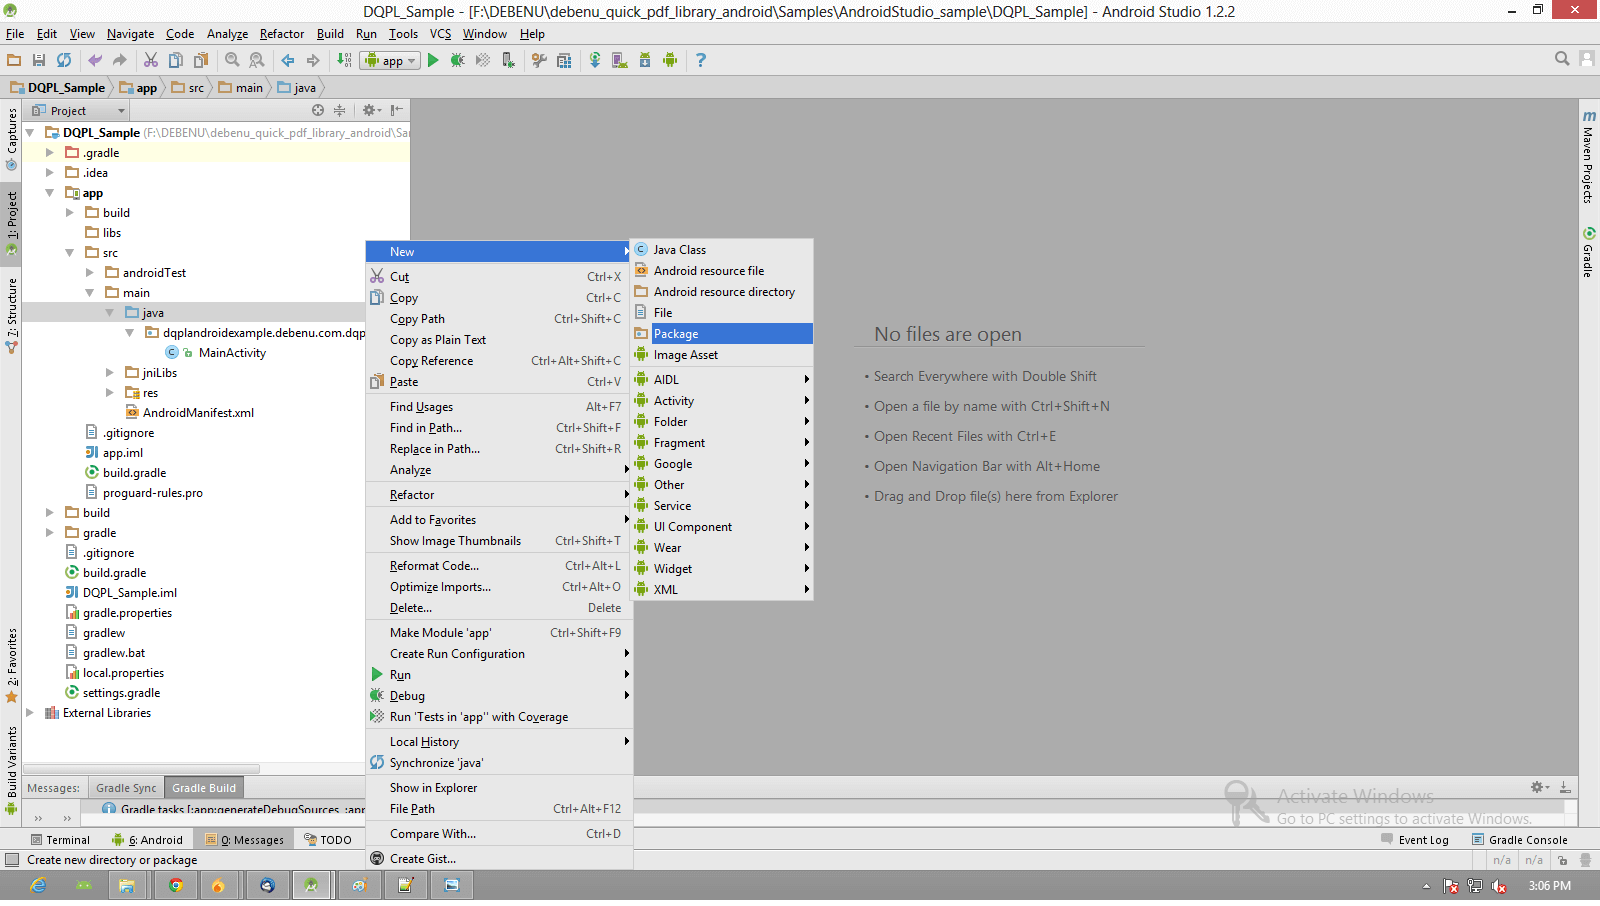 Setup Android Studio and Debenu Quick PDF Library - Foxit